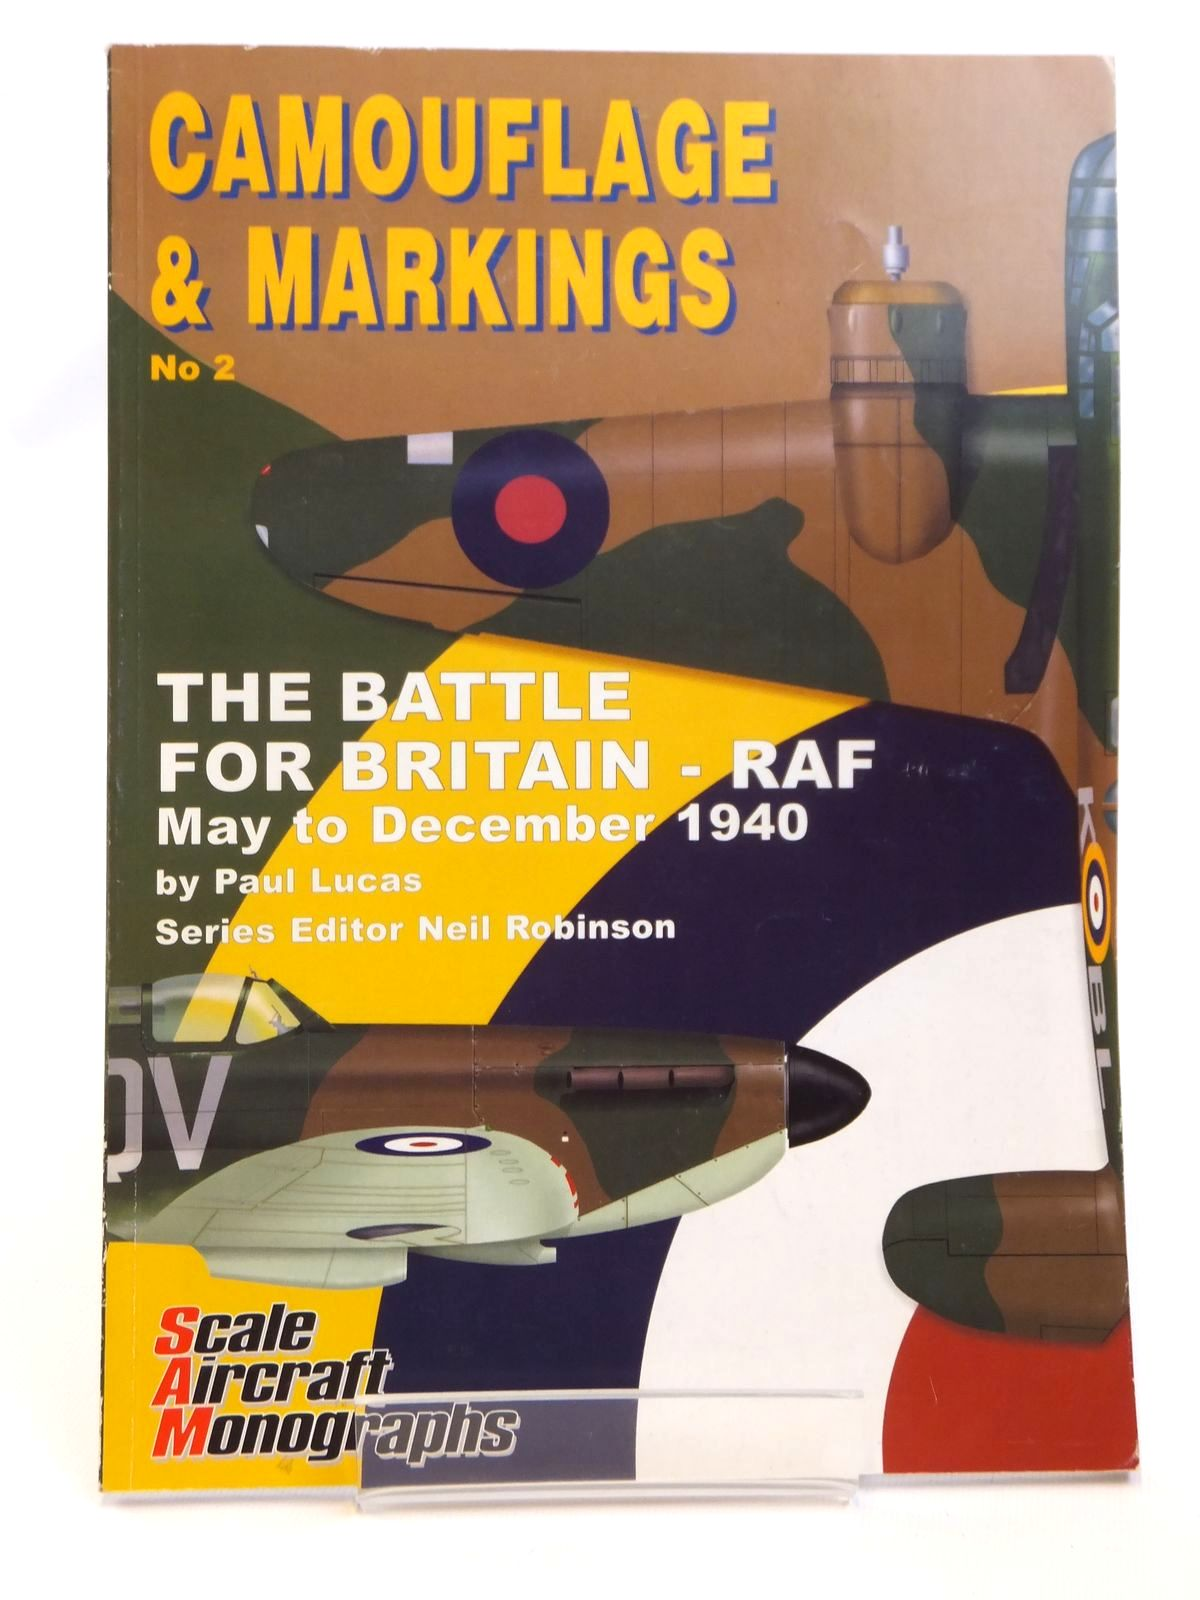 Photo of CAMOUFLAGE & MARKINGS  No. 2 THE BATTLE FOR BRITAIN - RAF MAY TO DECEMBER 1940 written by Lucas, Paul published by Guideline Publications (STOCK CODE: 1608312)  for sale by Stella & Rose's Books